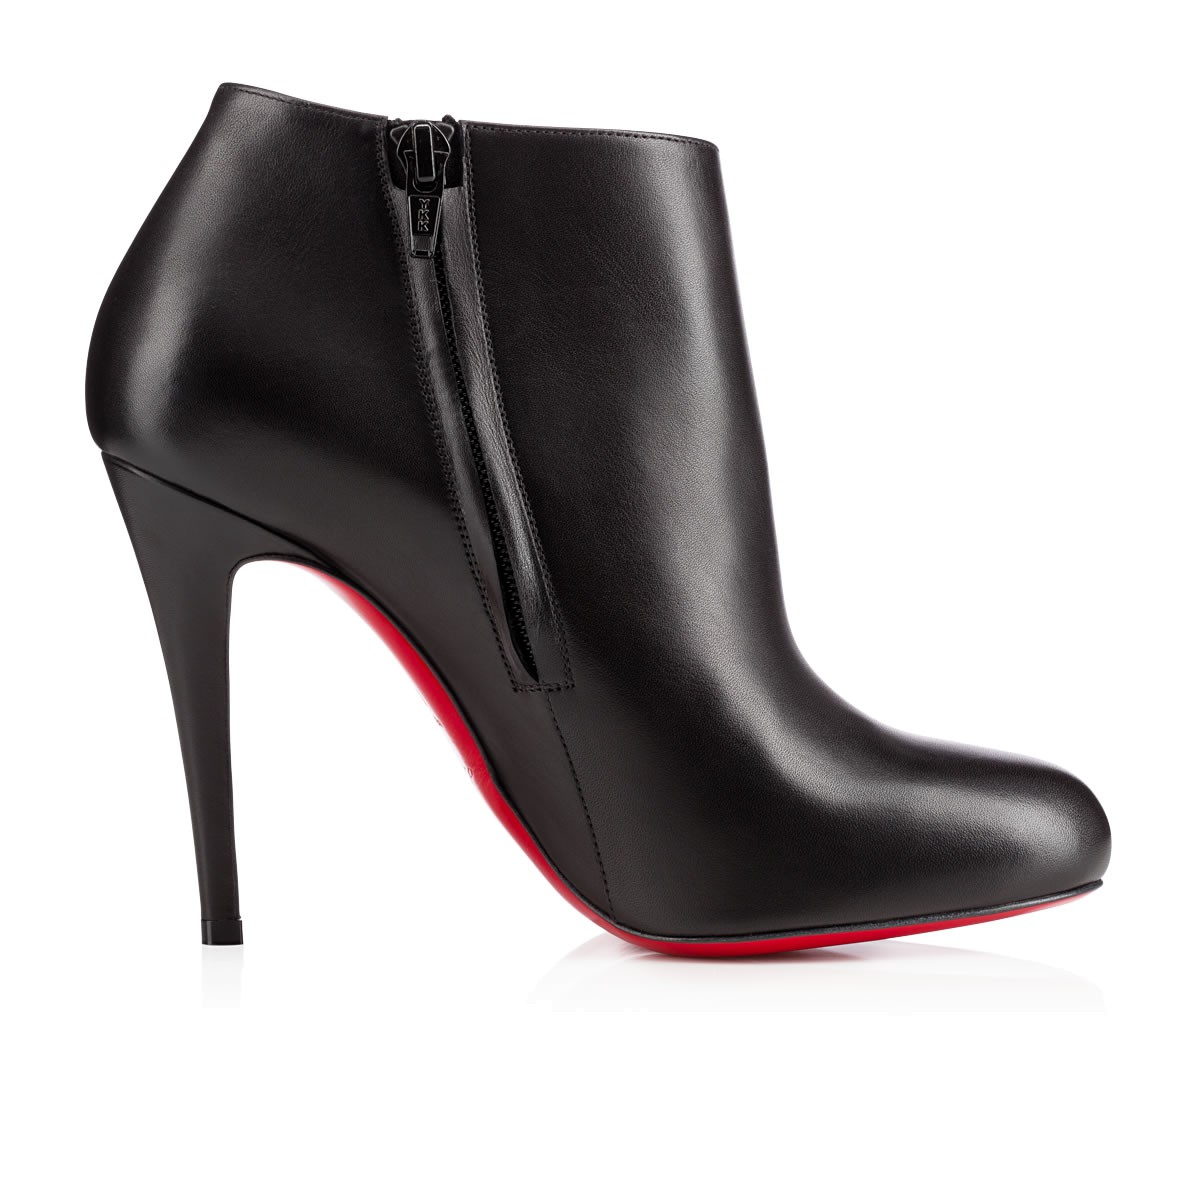 ... Shoes - Belle - Christian Louboutin ... 9cf06c1fa